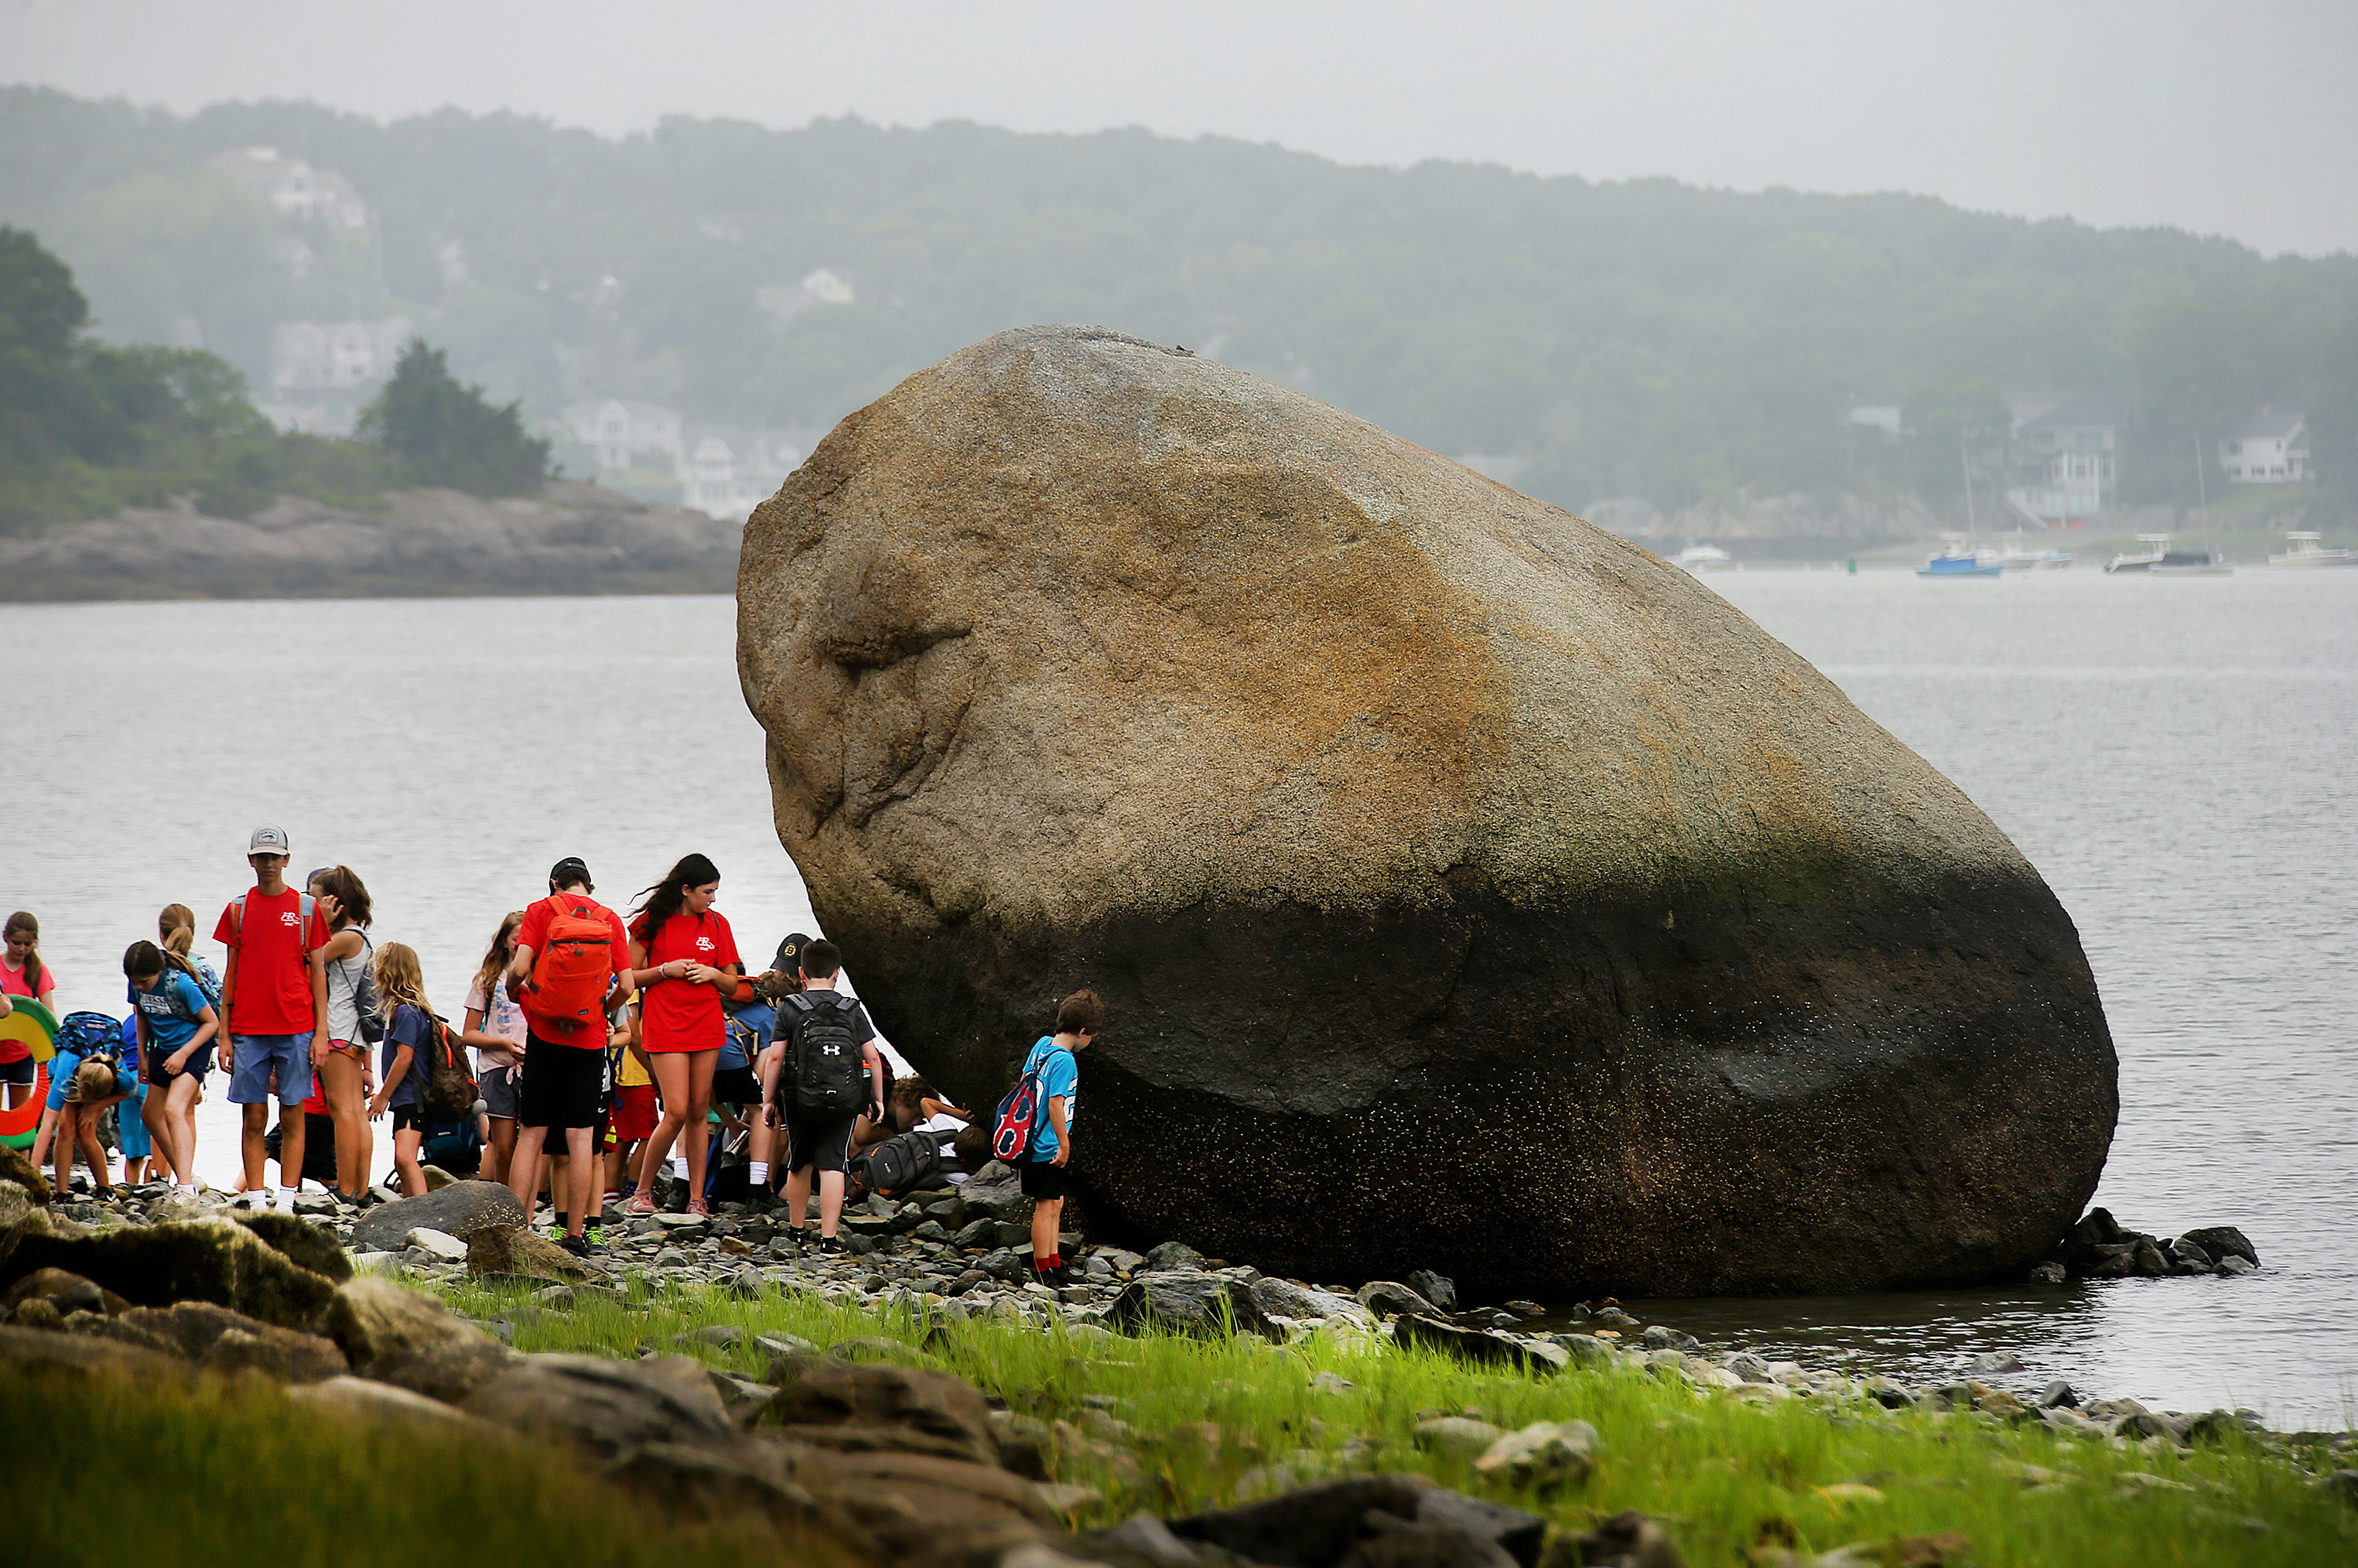 The kids from Hingham's Parks and Recreation Department stop to gaze at a huge boulder along the shore at World's End.